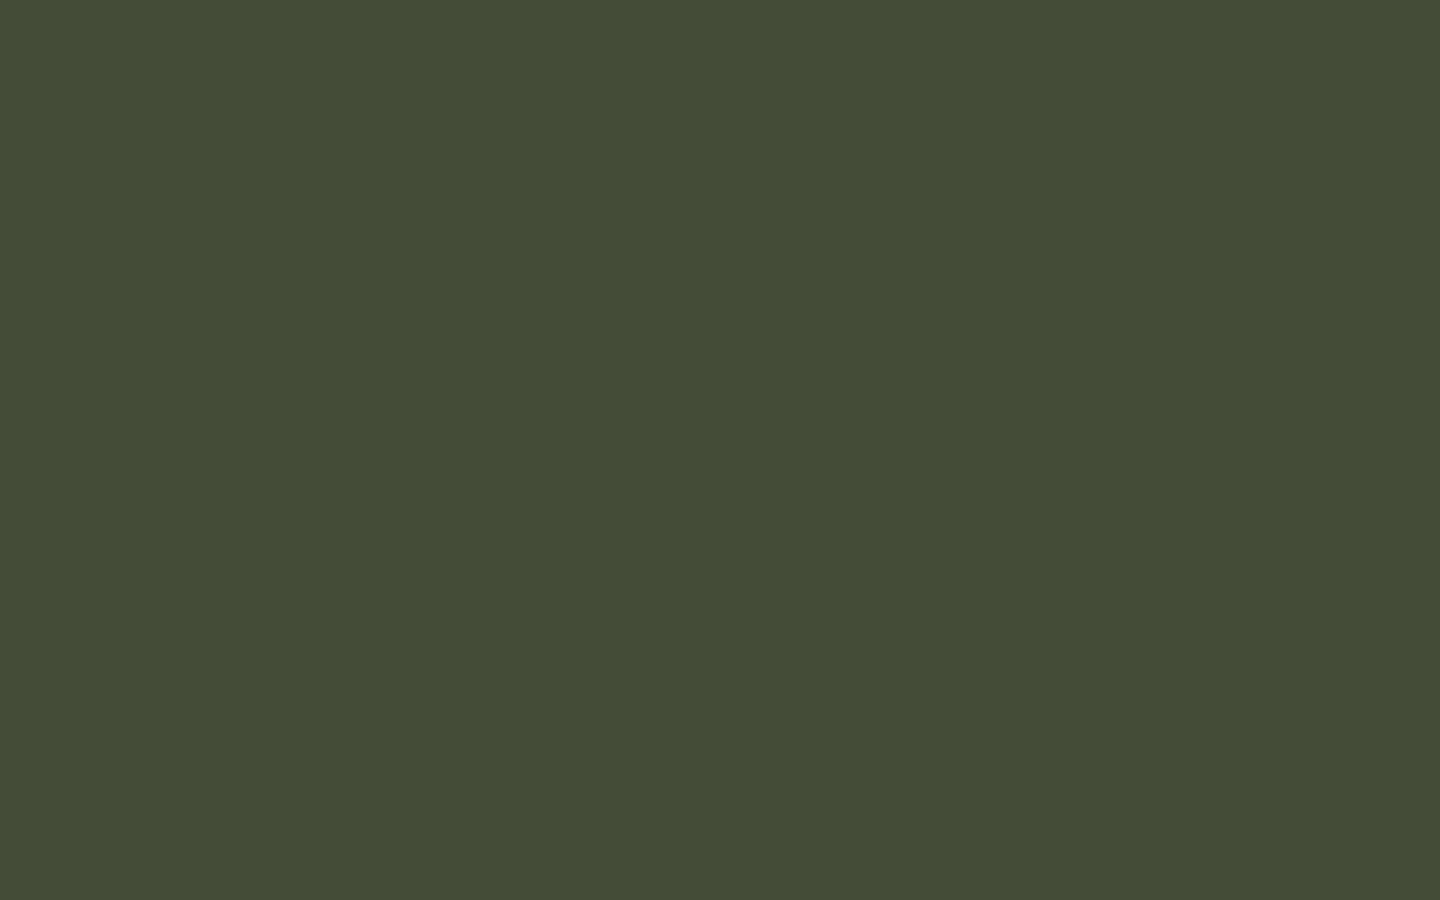 1440x900 Rifle Green Solid Color Background